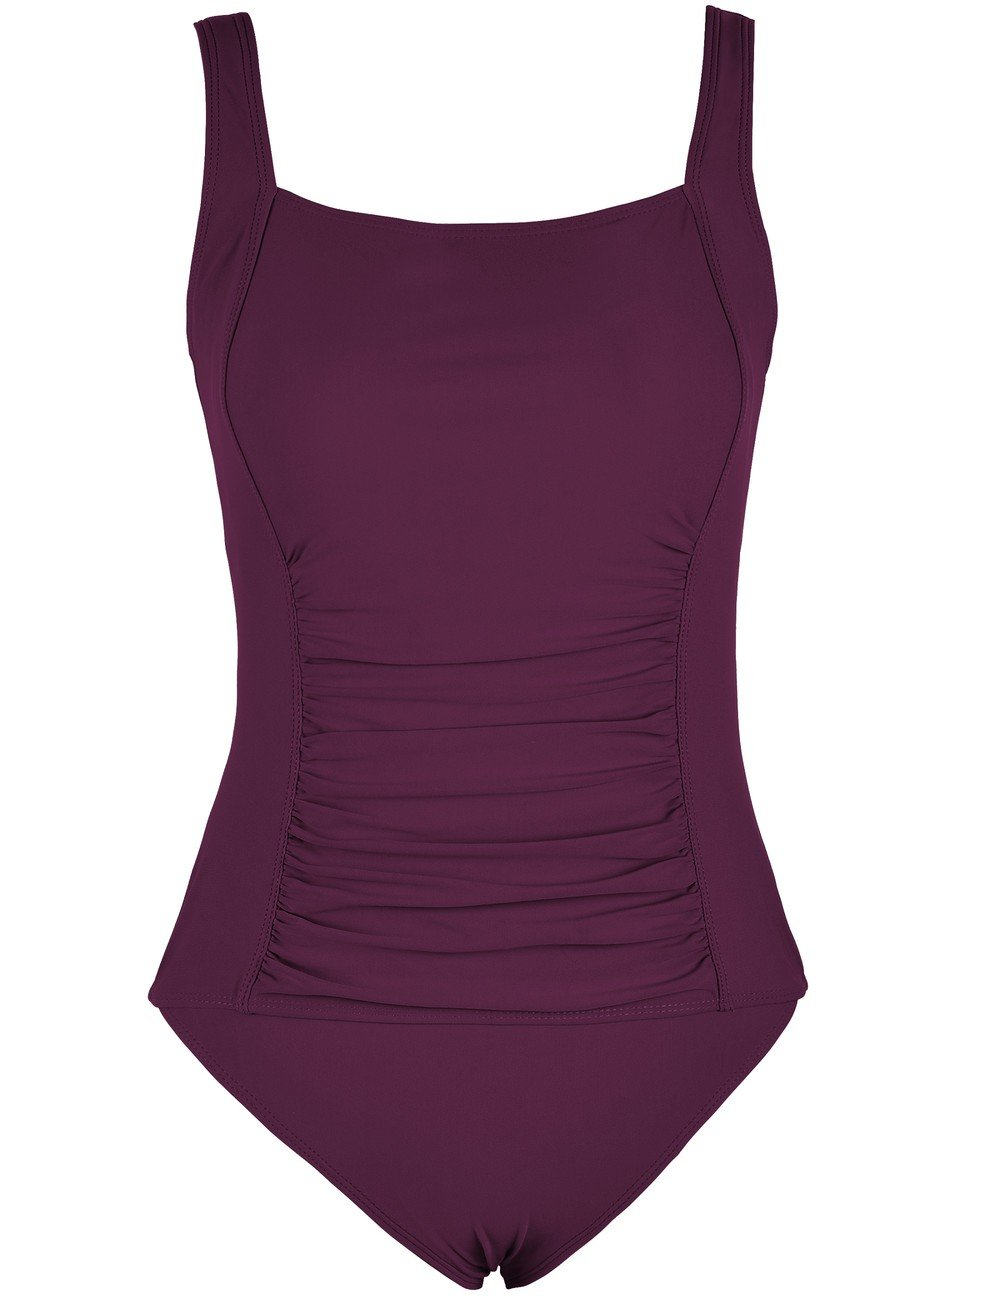 Mycoco Women's Shirred One Piece Swimsuit Tank Bathing Suits Tummy Control Swimwear Burgundy 10